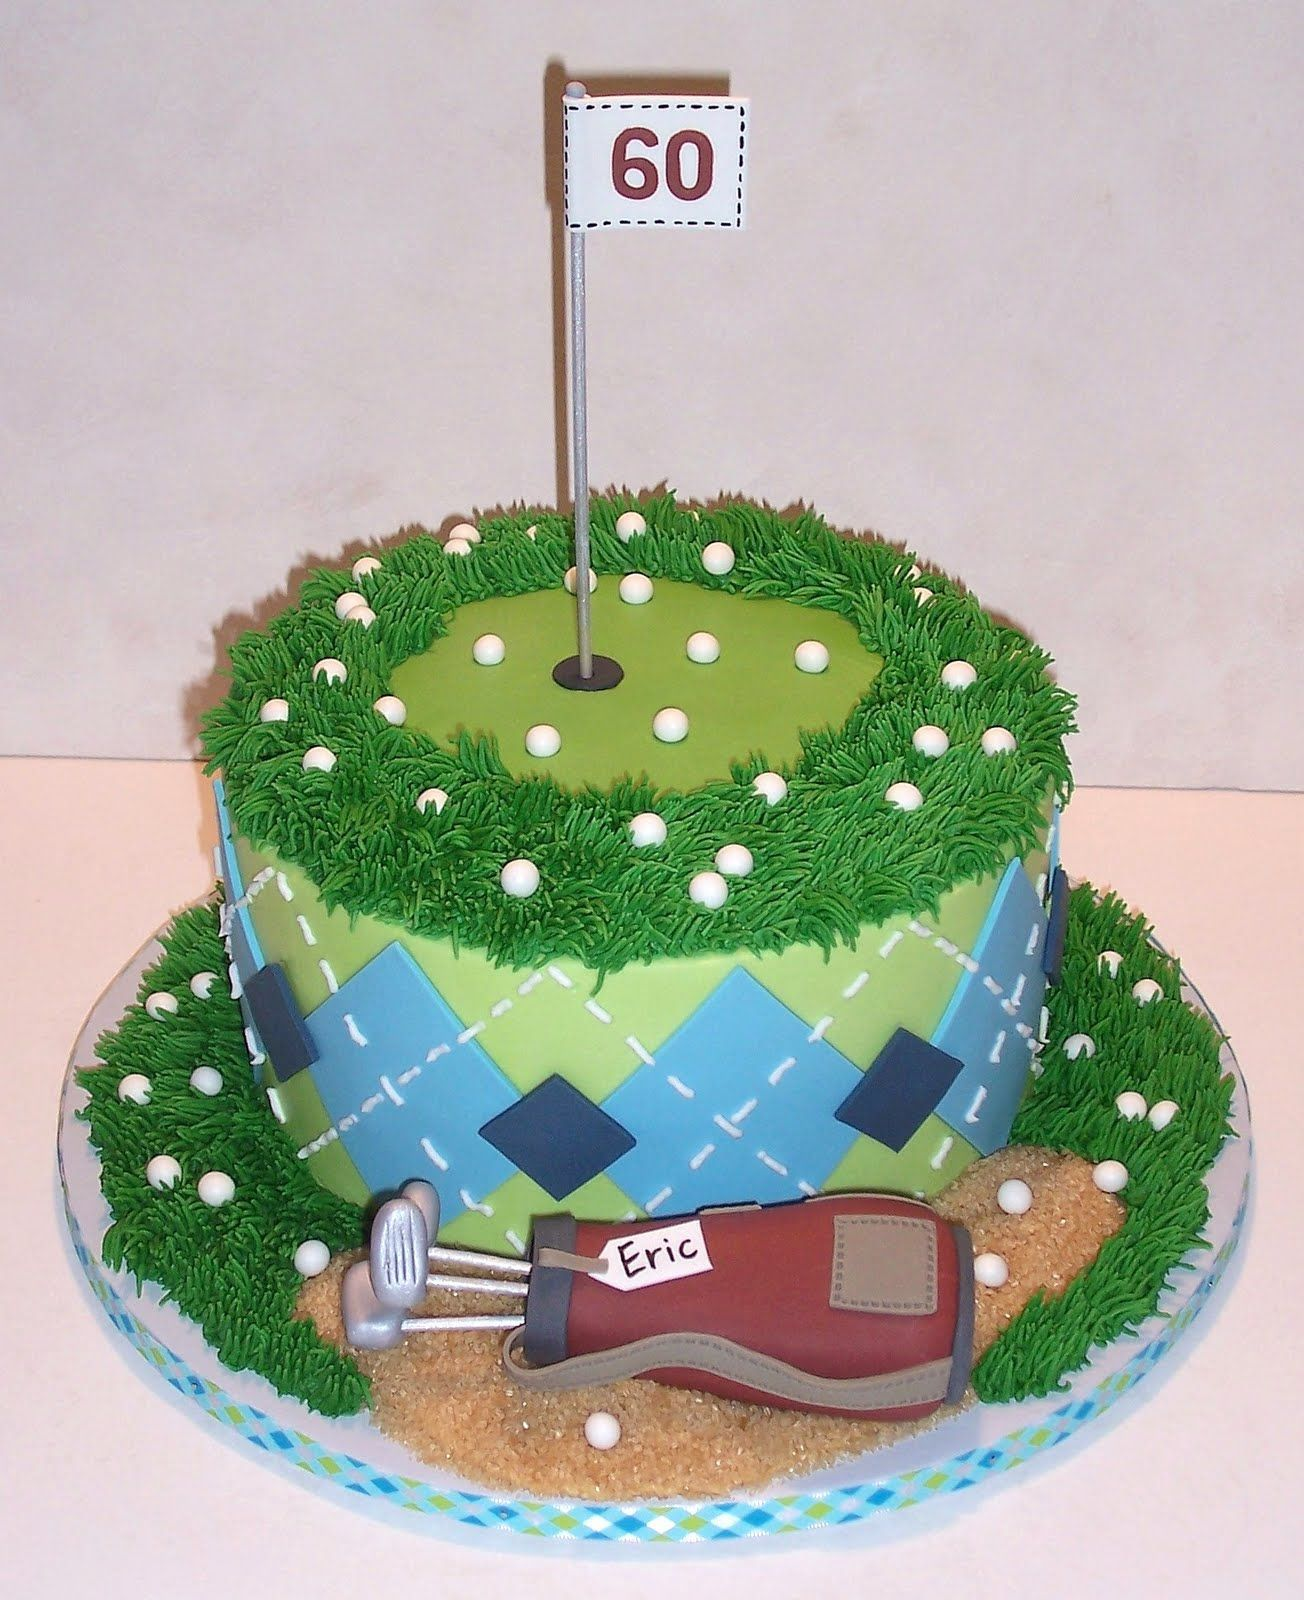 Three golf cakes for 60th birthday celebrations First a cake